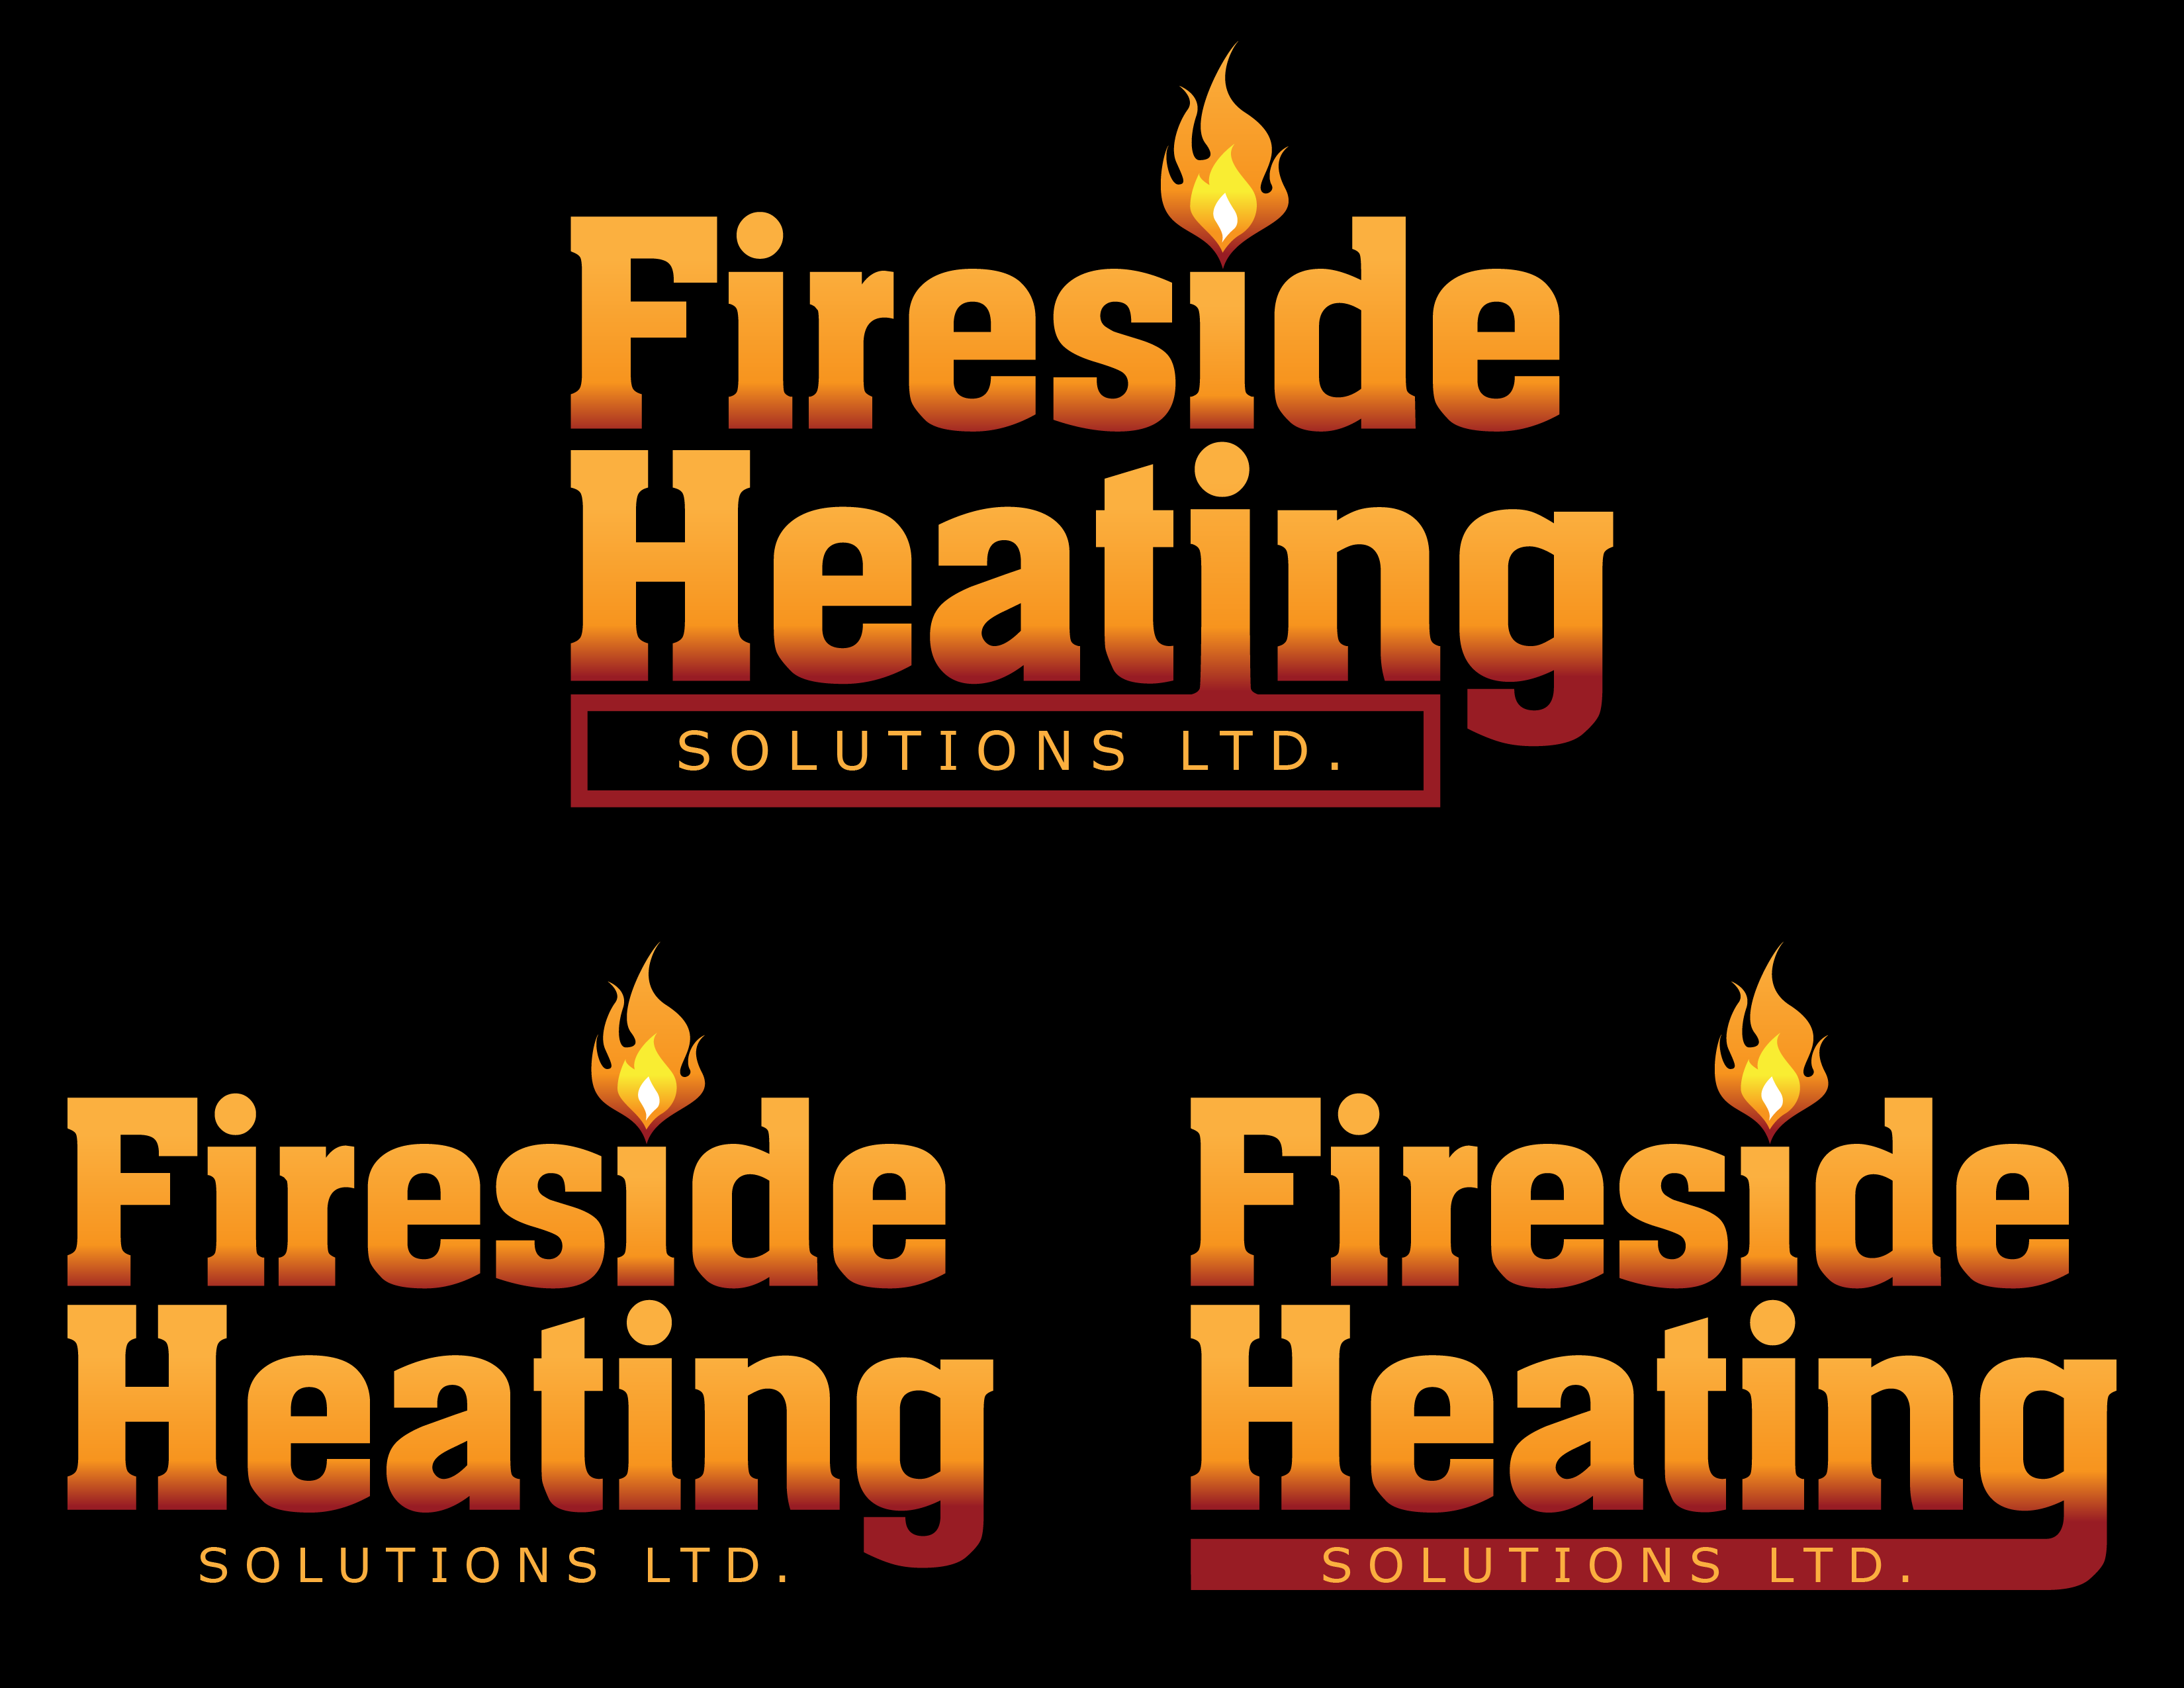 Logo Design by Andrew Velasco - Entry No. 4 in the Logo Design Contest Creative Logo Design for Fireside Heating Solutions Ltd..